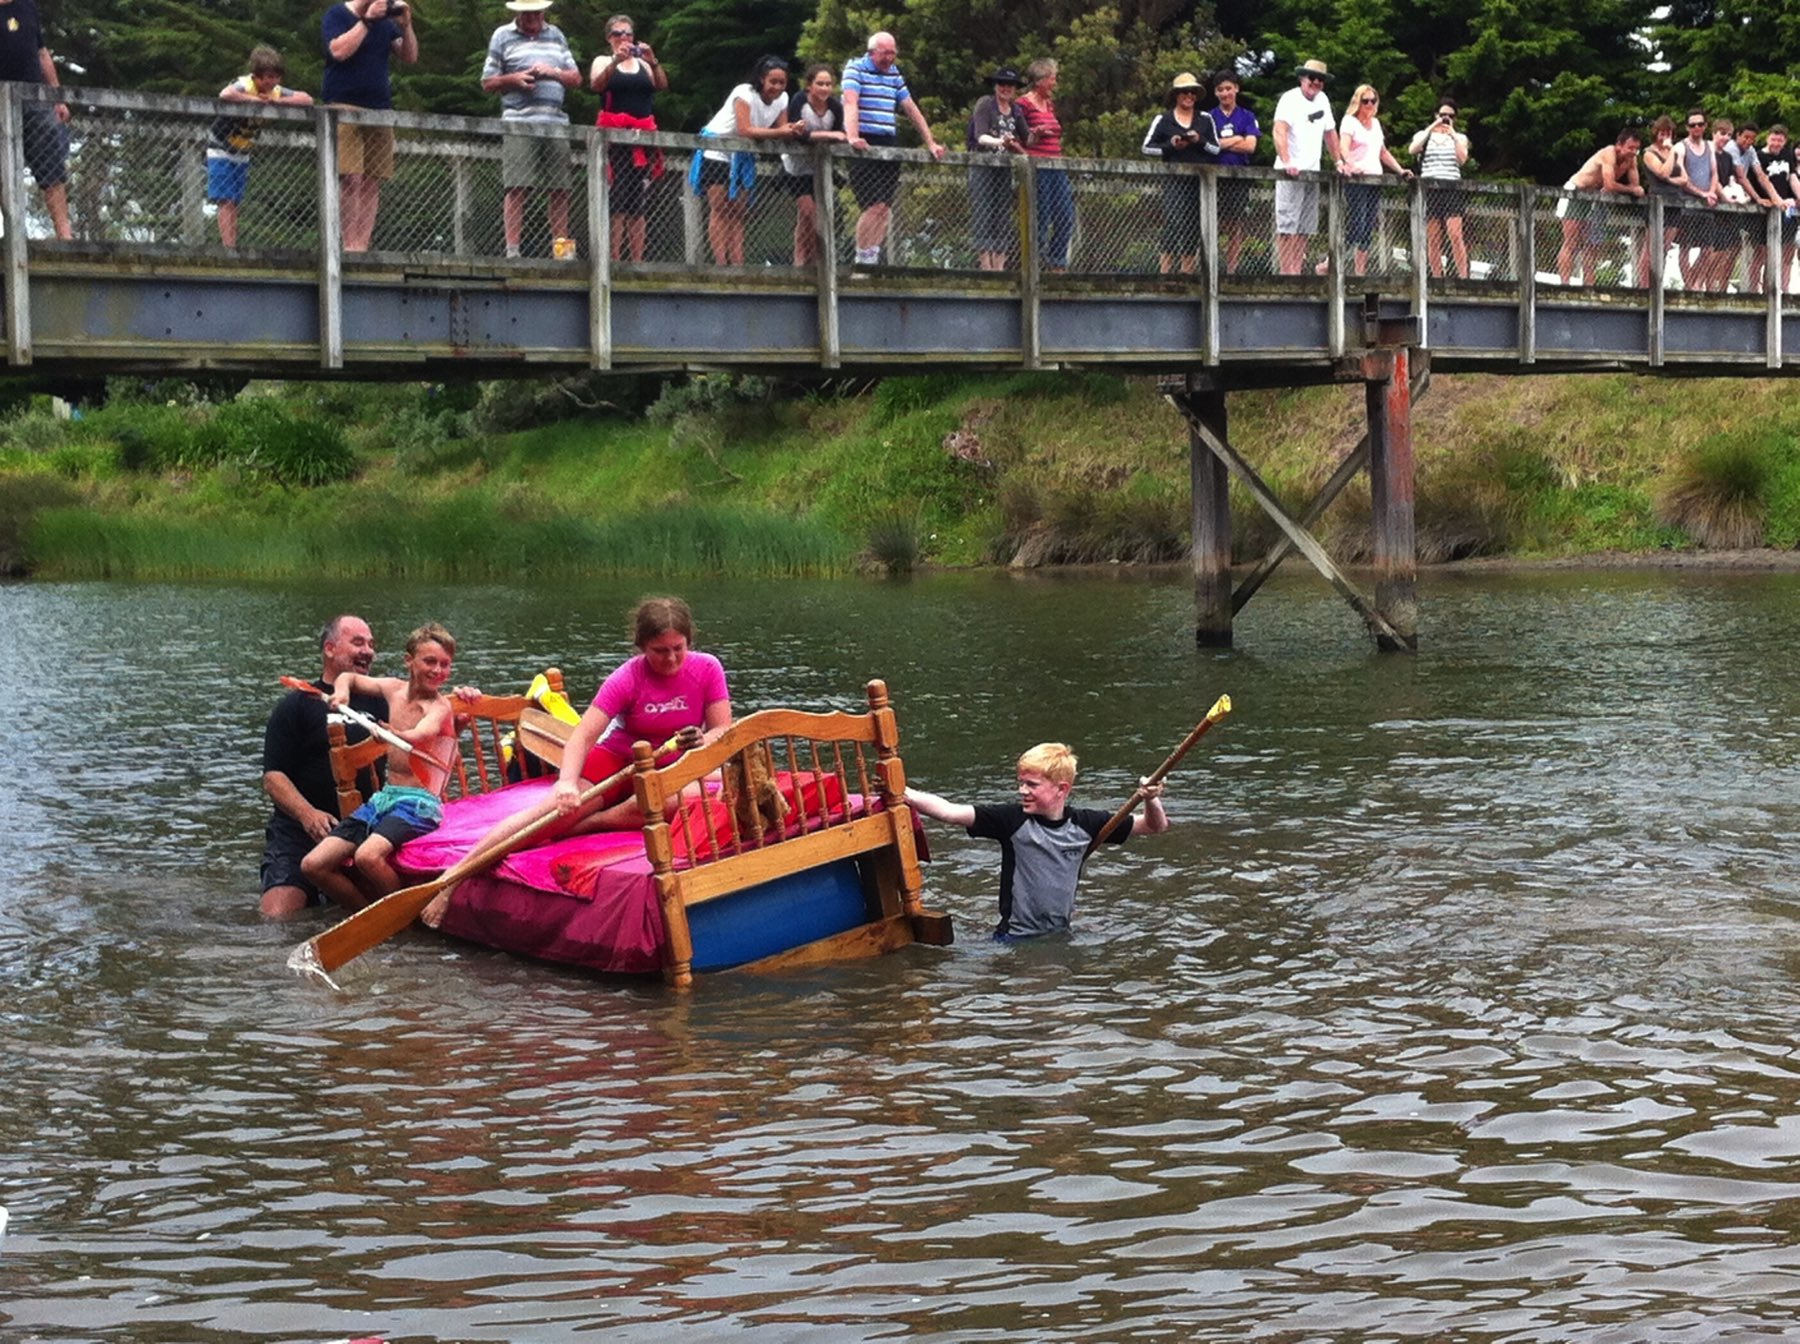 A bed-shaped boat in the river, with many onlookers.